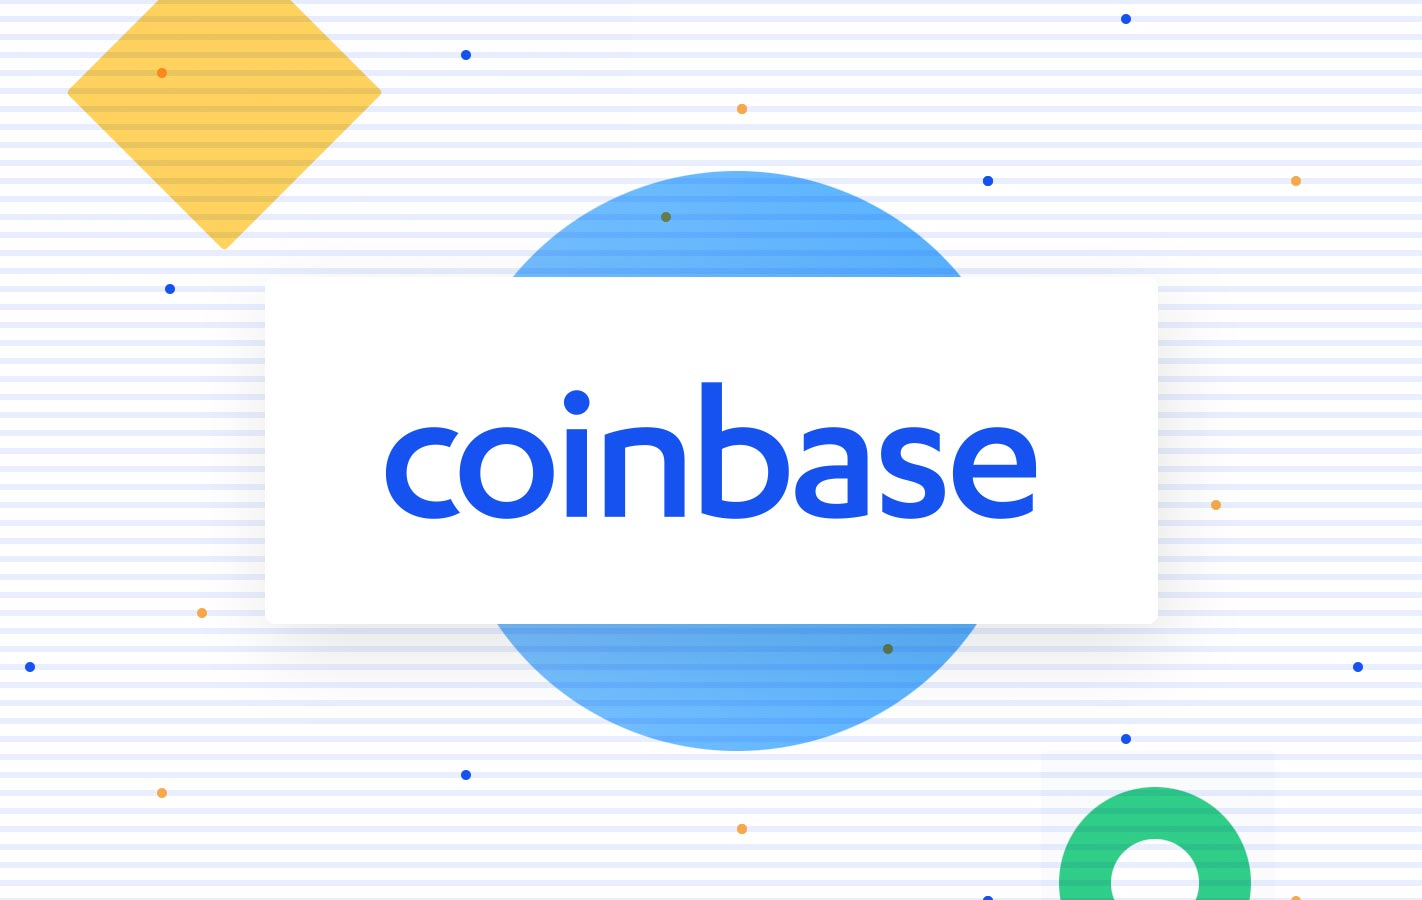 Coinbase Plans To Go Public Evading the Traditional IPO Process